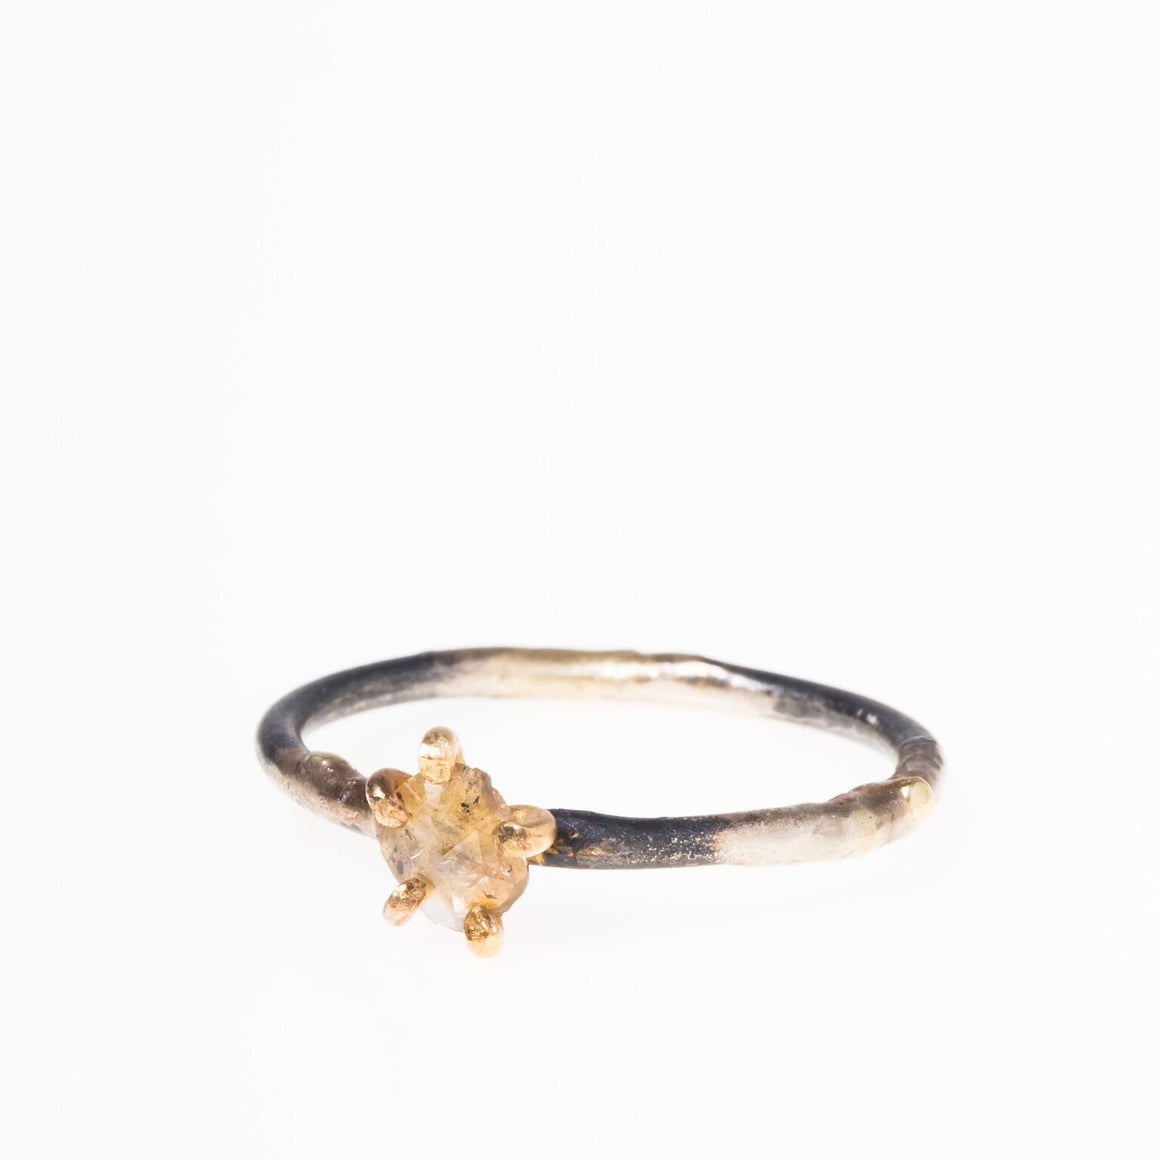 14K + 18K Clear Rosecut Diamond Ring on Skinny Band - KESTREL